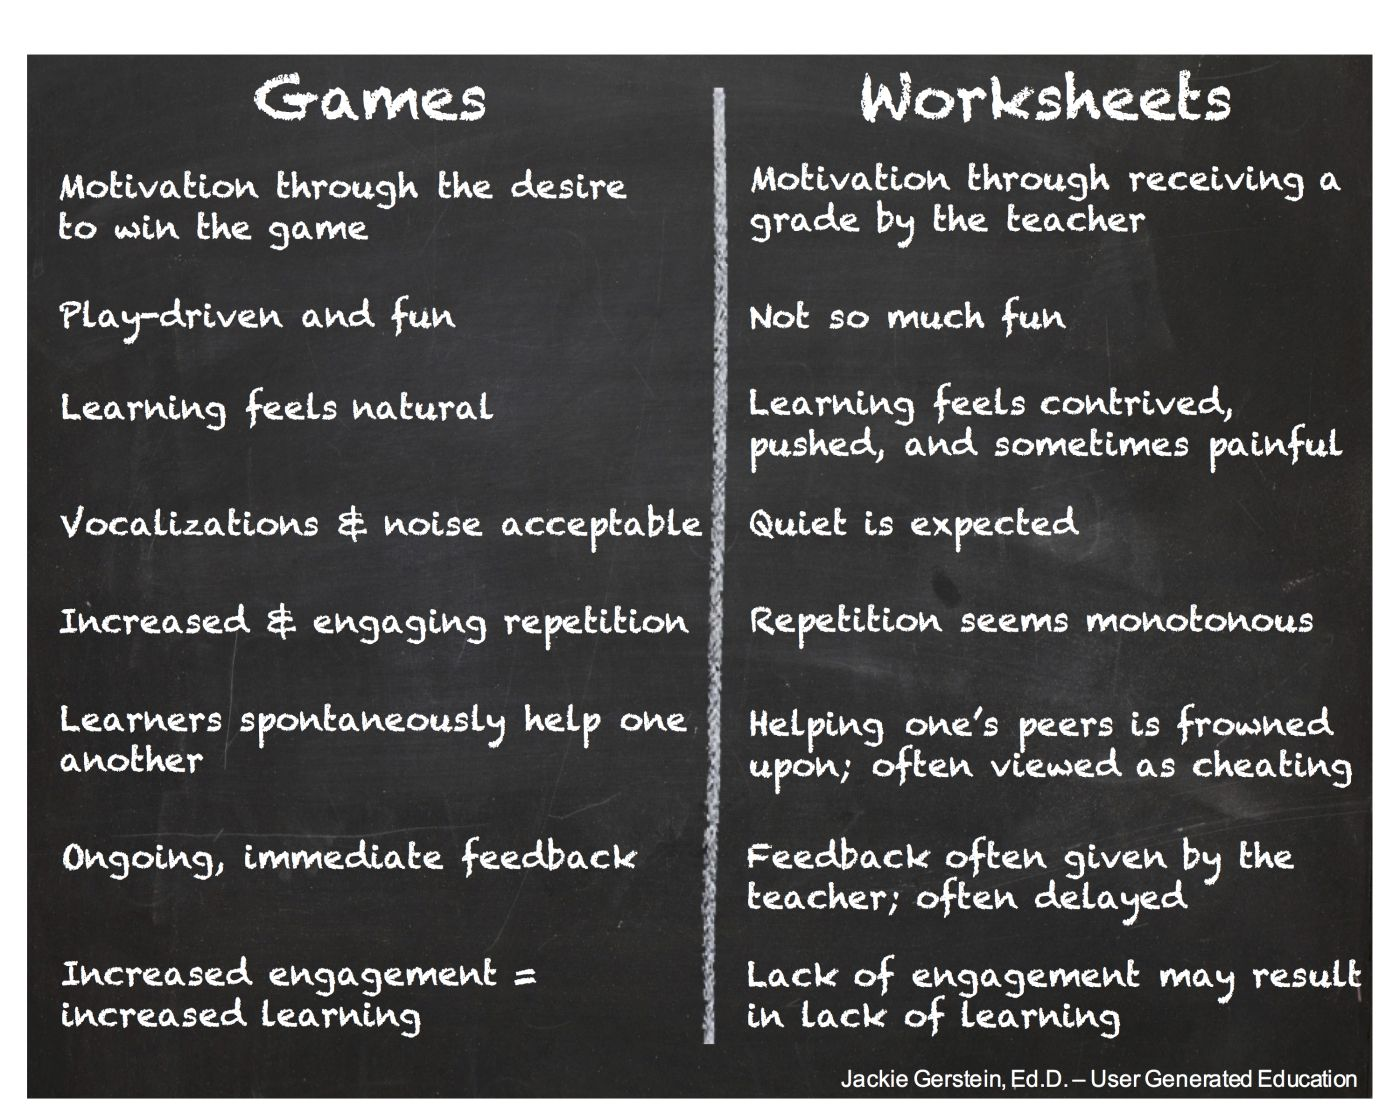 Games Or Worksheets Is There Really A Question About The